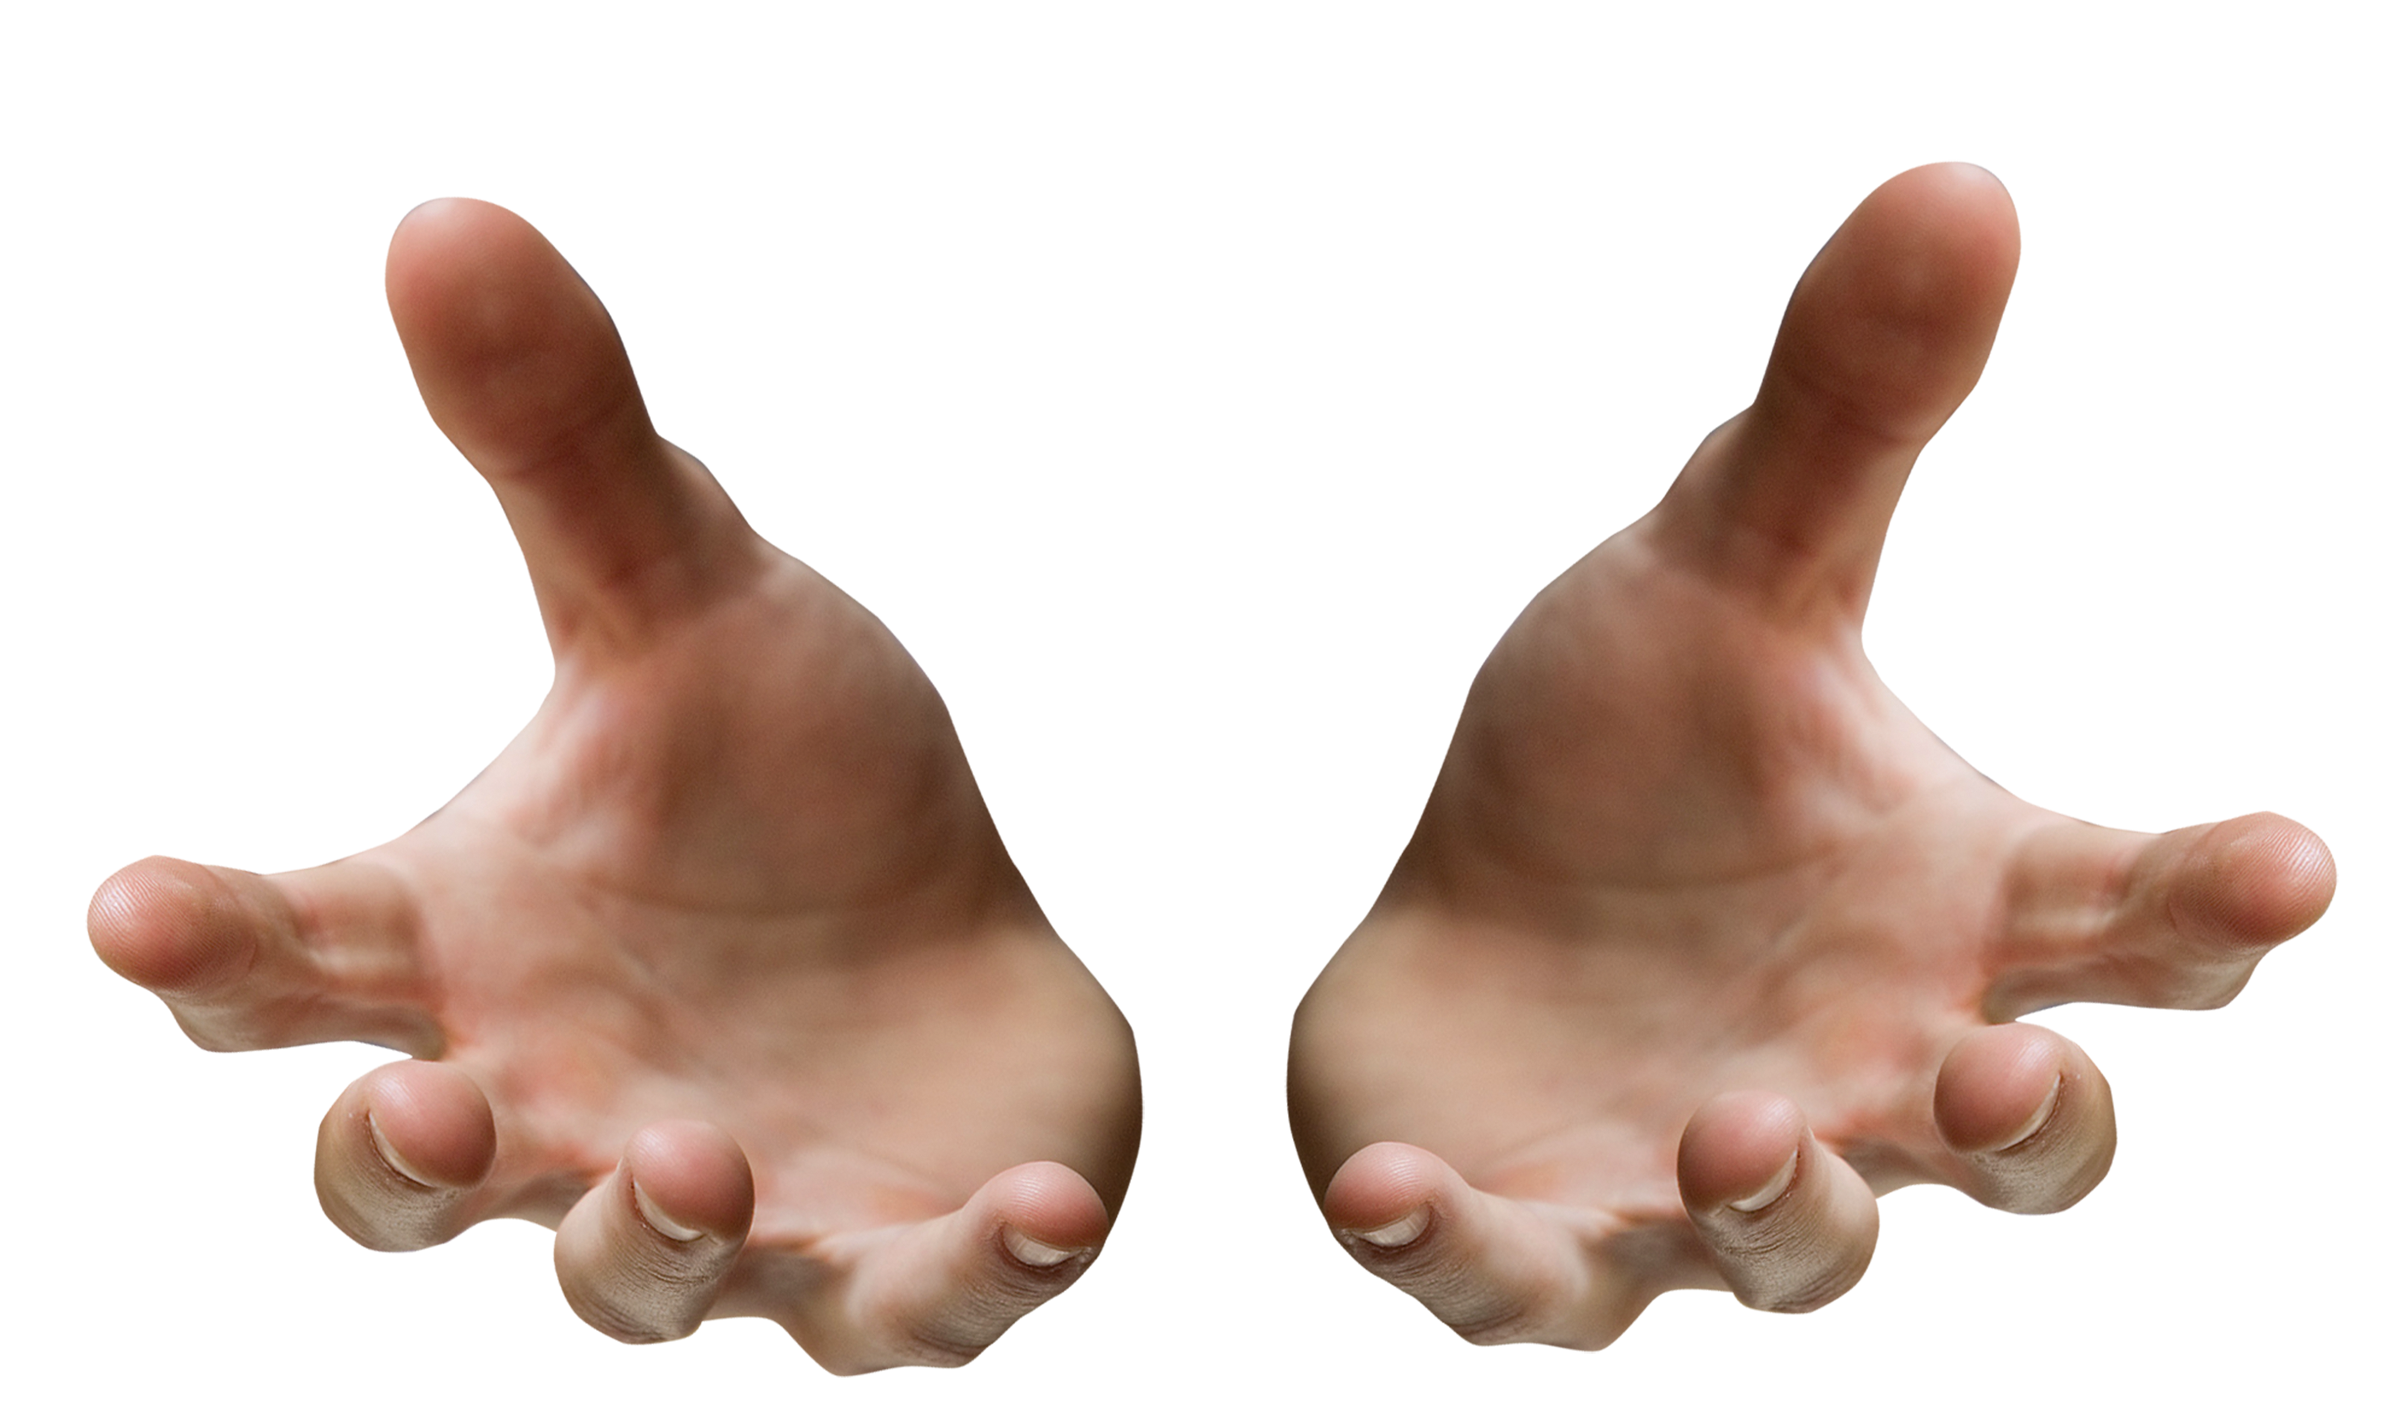 604 Hand Png By Tigers Stock On Deviantart Hands Reaching Out Hand Pose Hand Logo